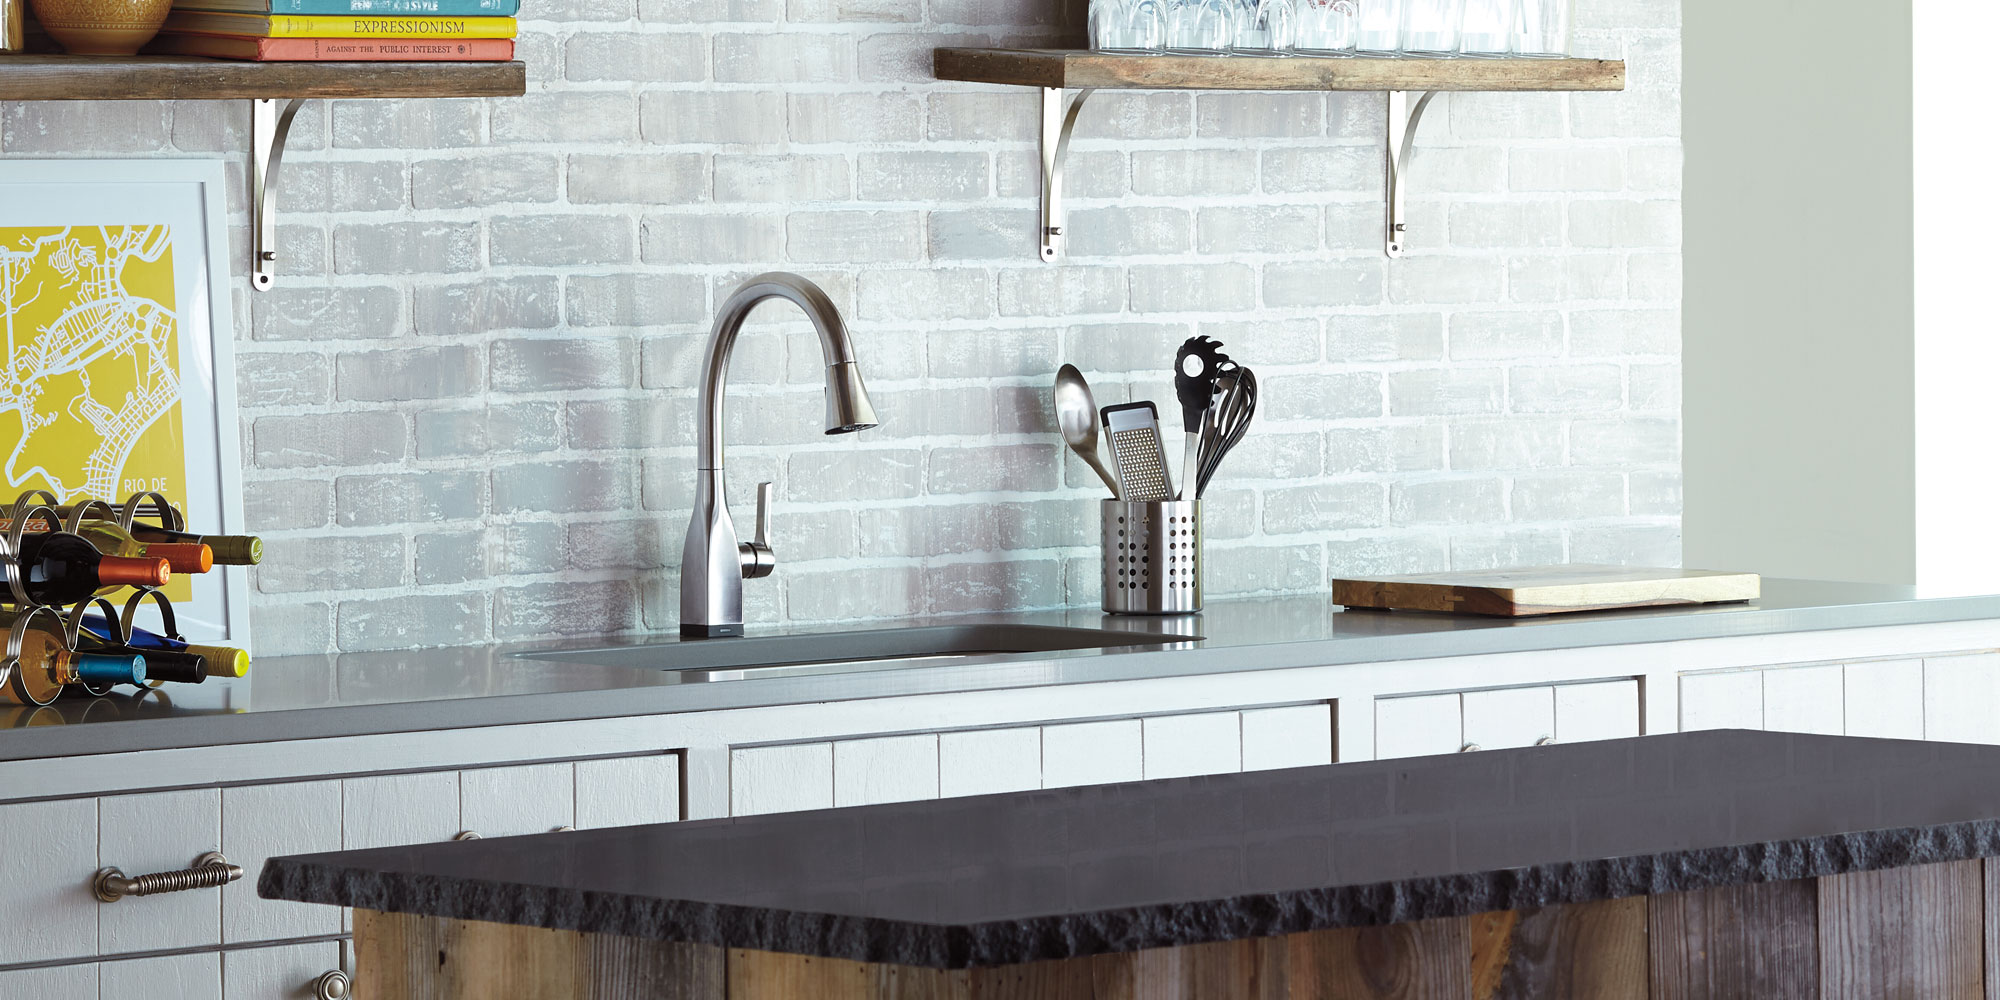 How Does a Touchless Kitchen Faucet Work?